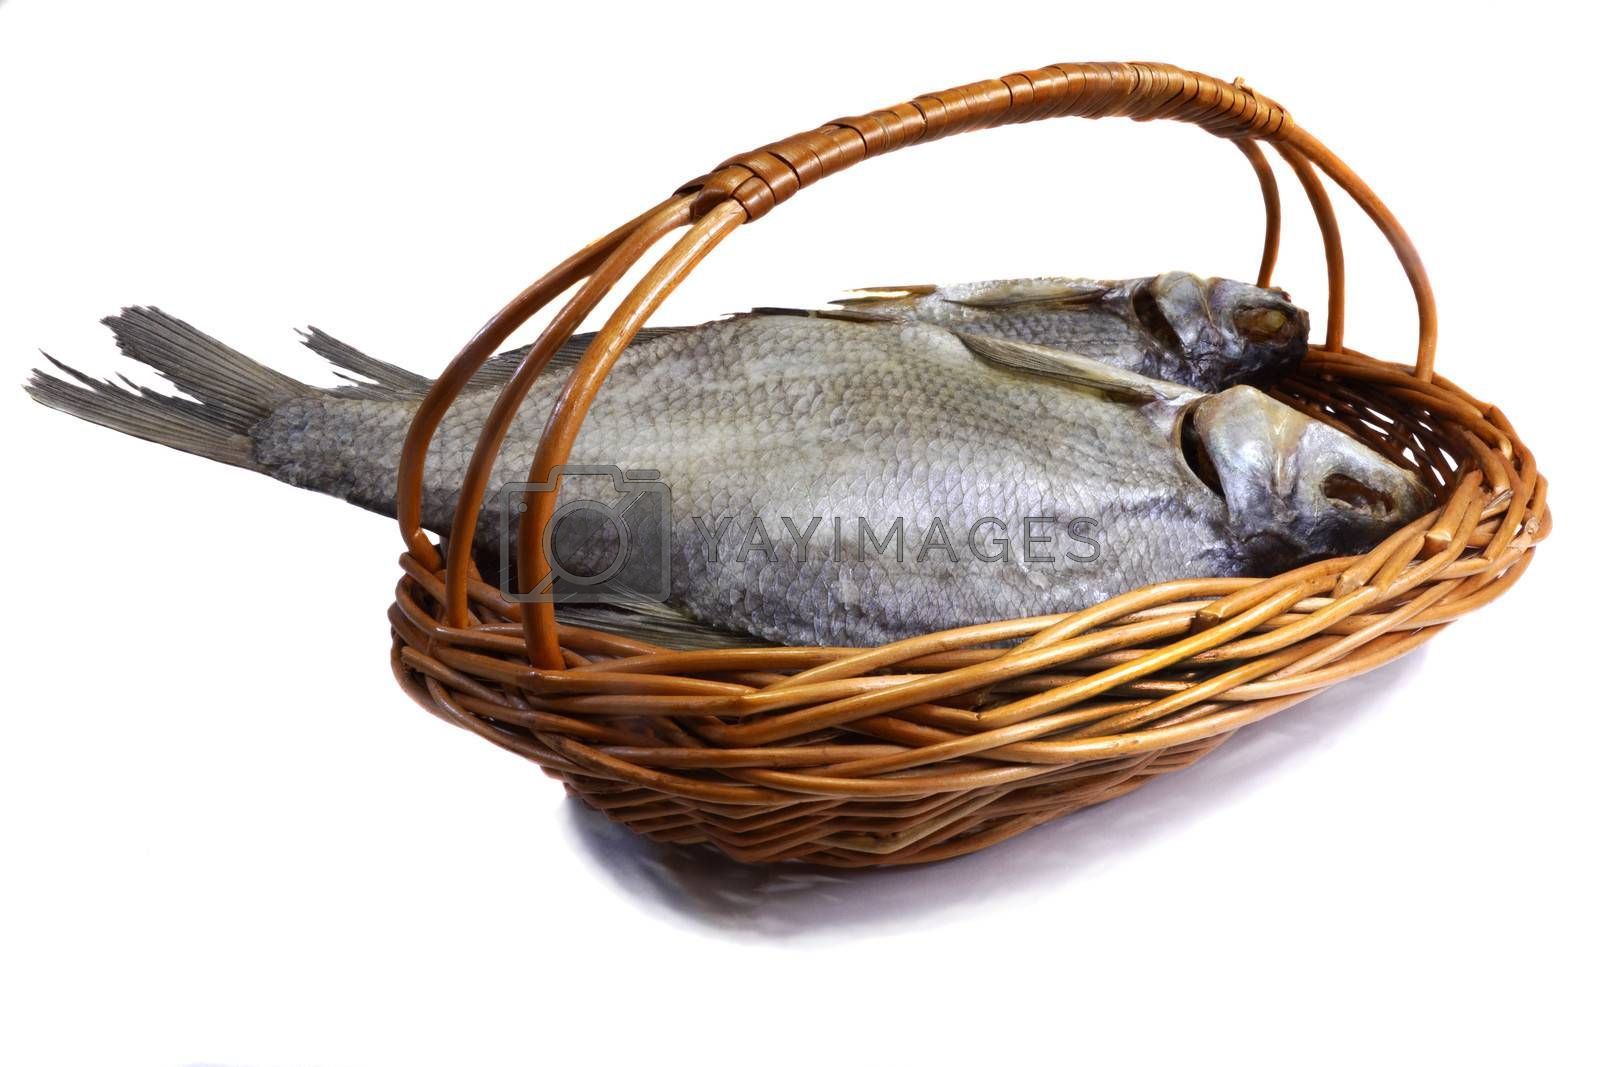 Two river fish, salted and dried . Presented on a white background.